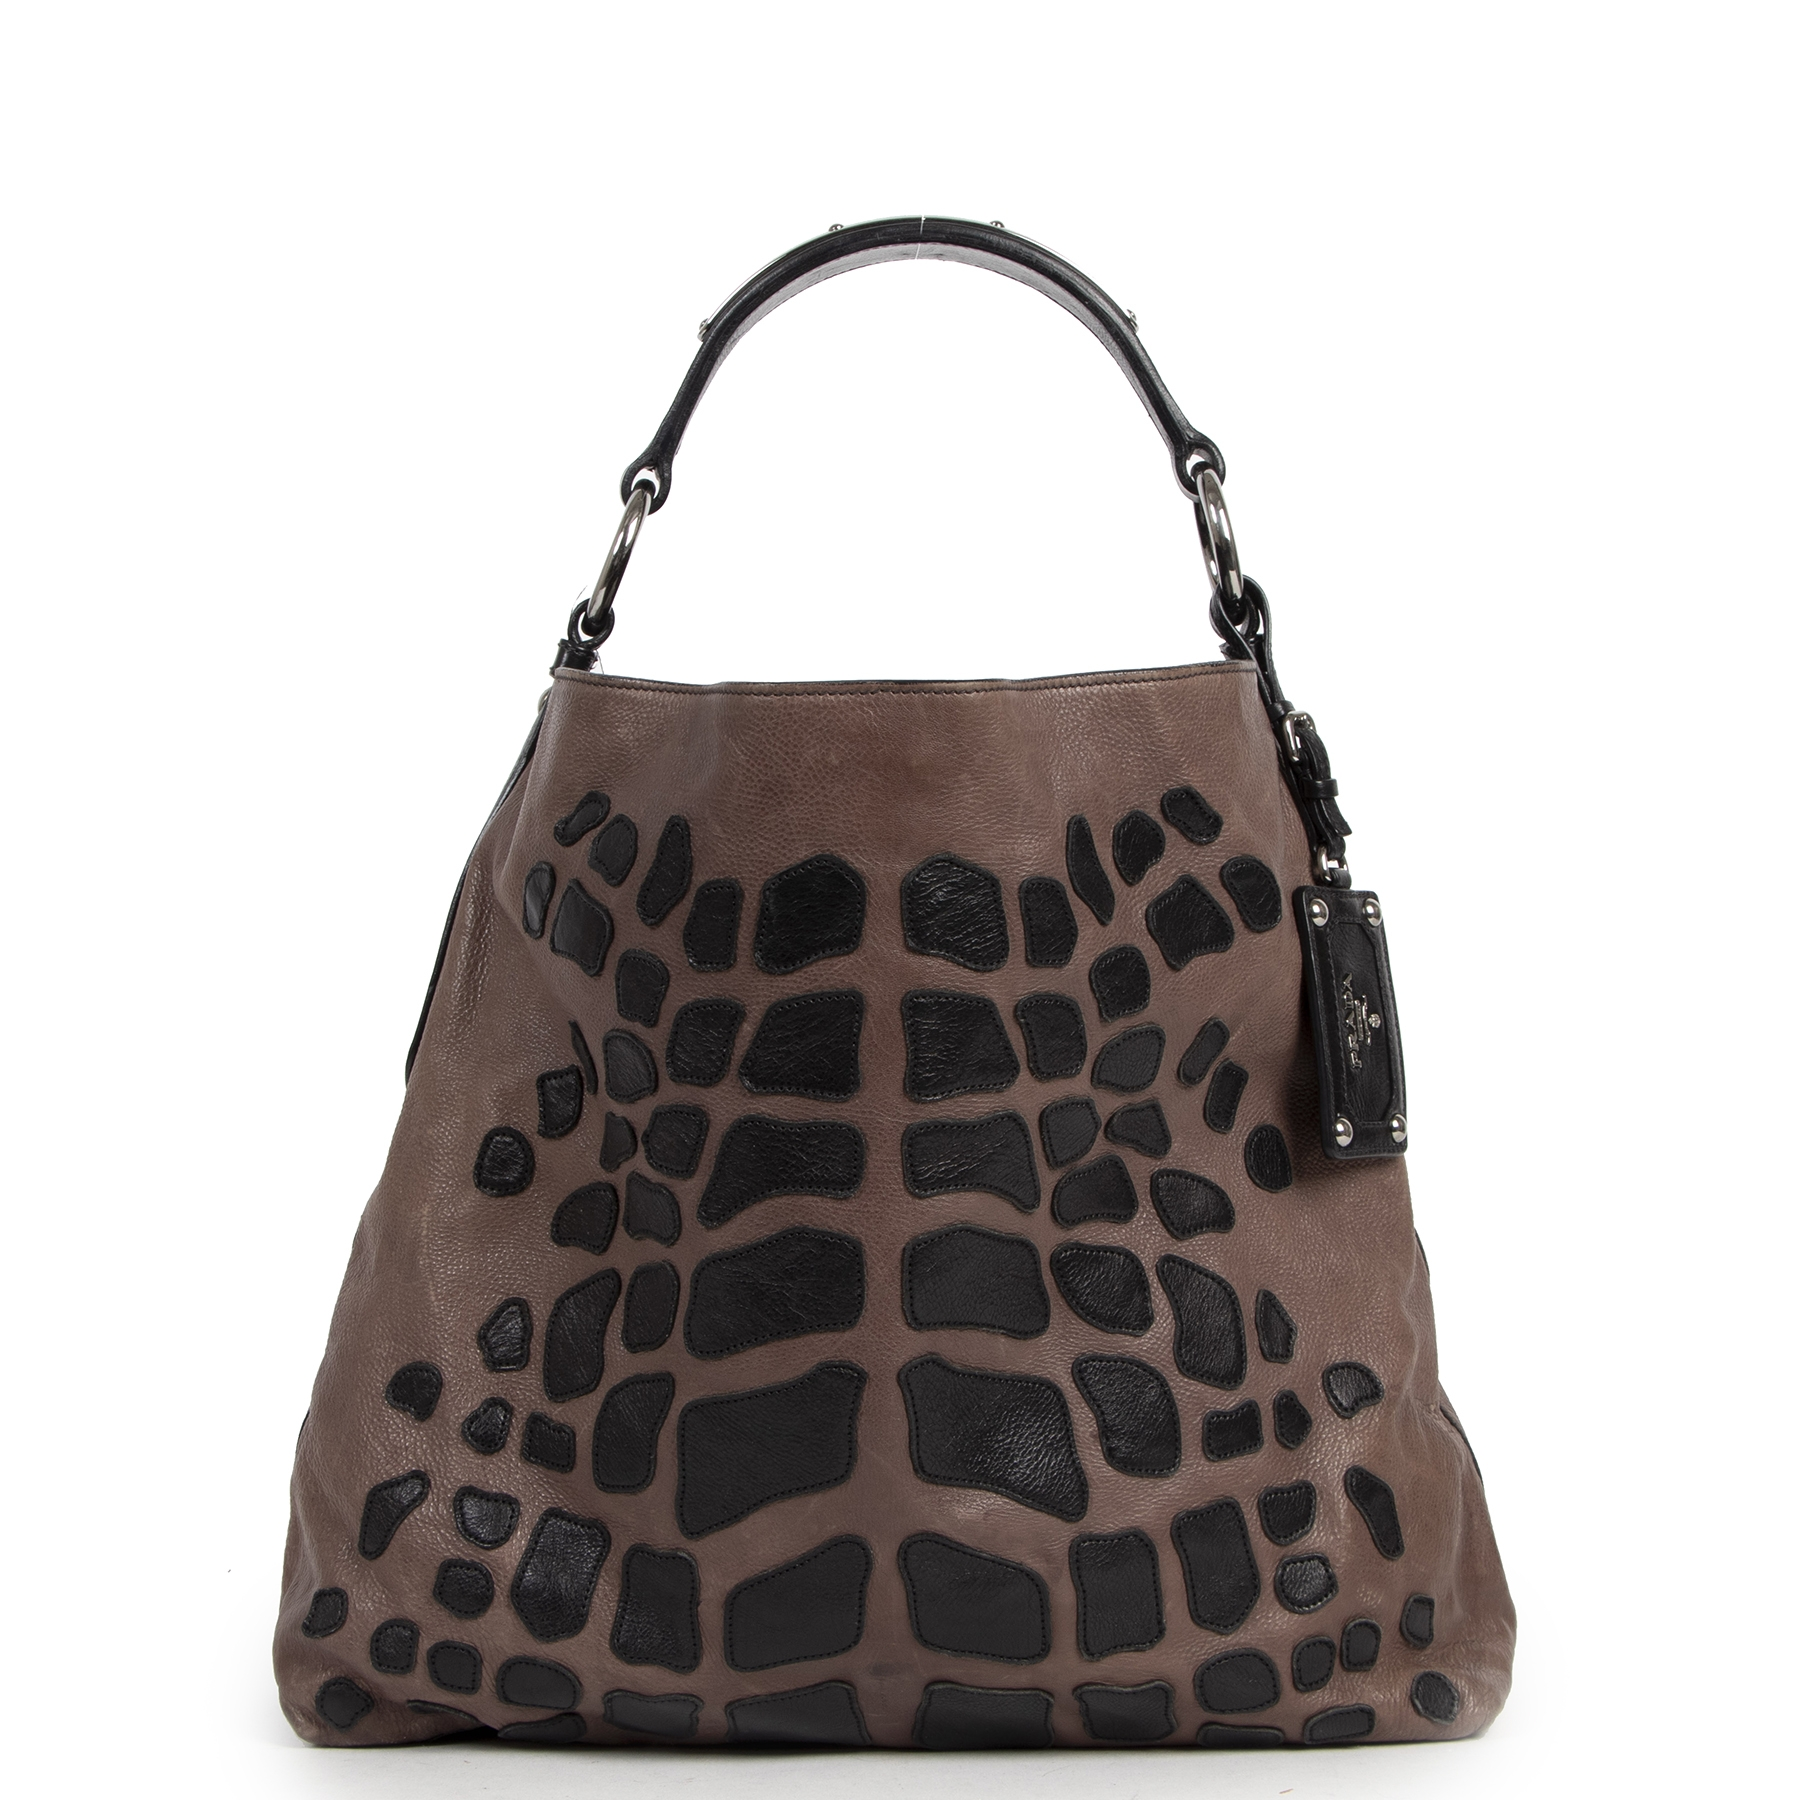 Buy authentic secondhand Prada bags at the right price at LabelLOV vintage webshop. Safe and secure online shopping.